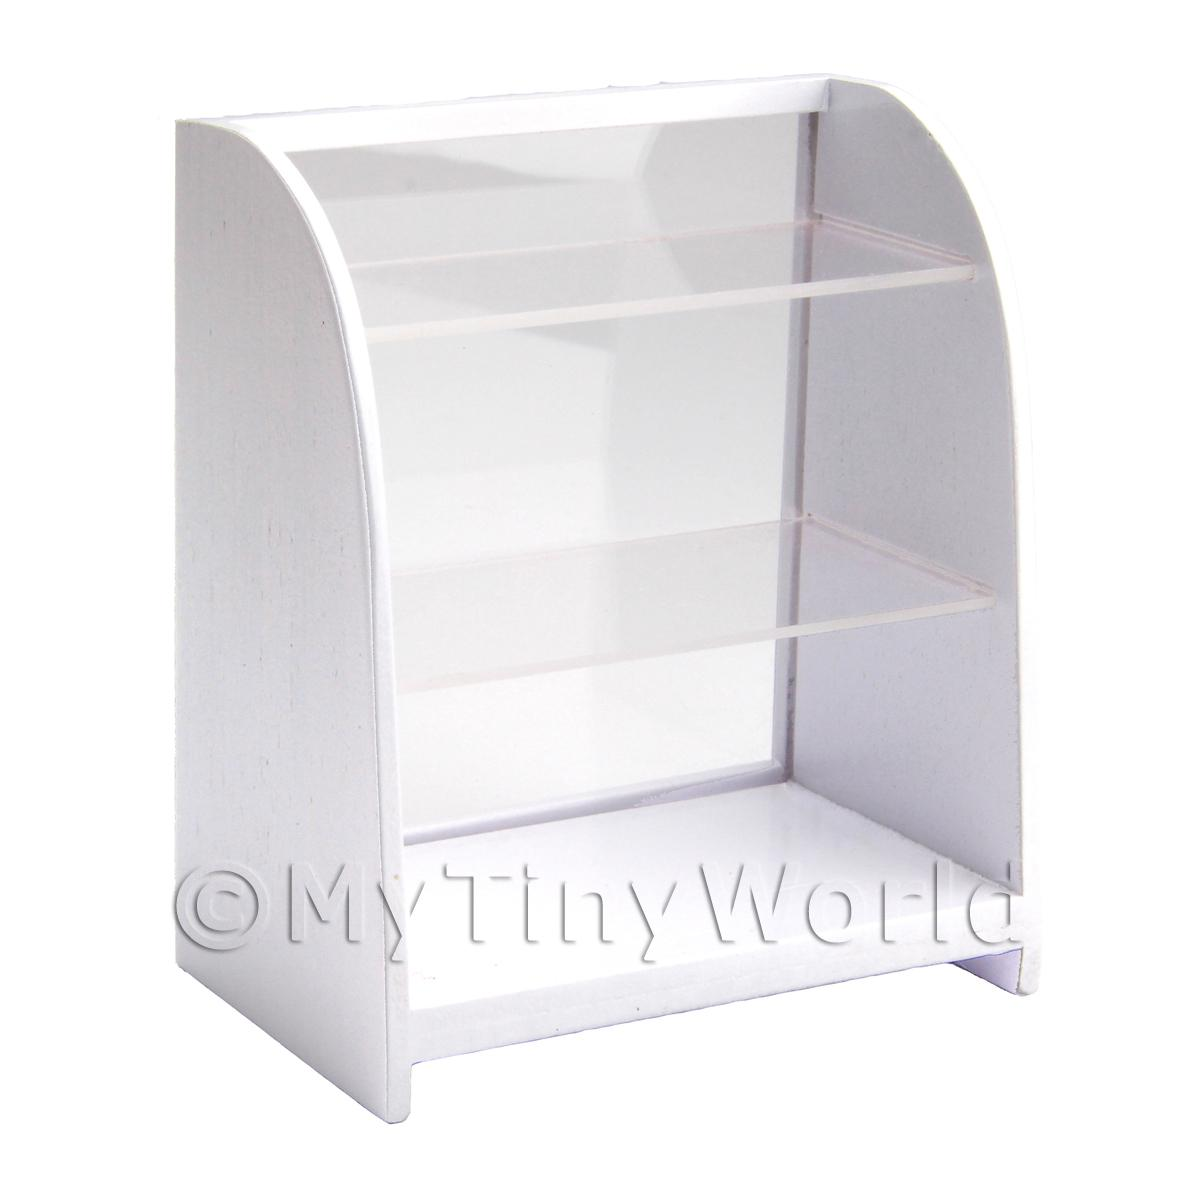 Dolls House Miniature White Wood Table Top Display Unit